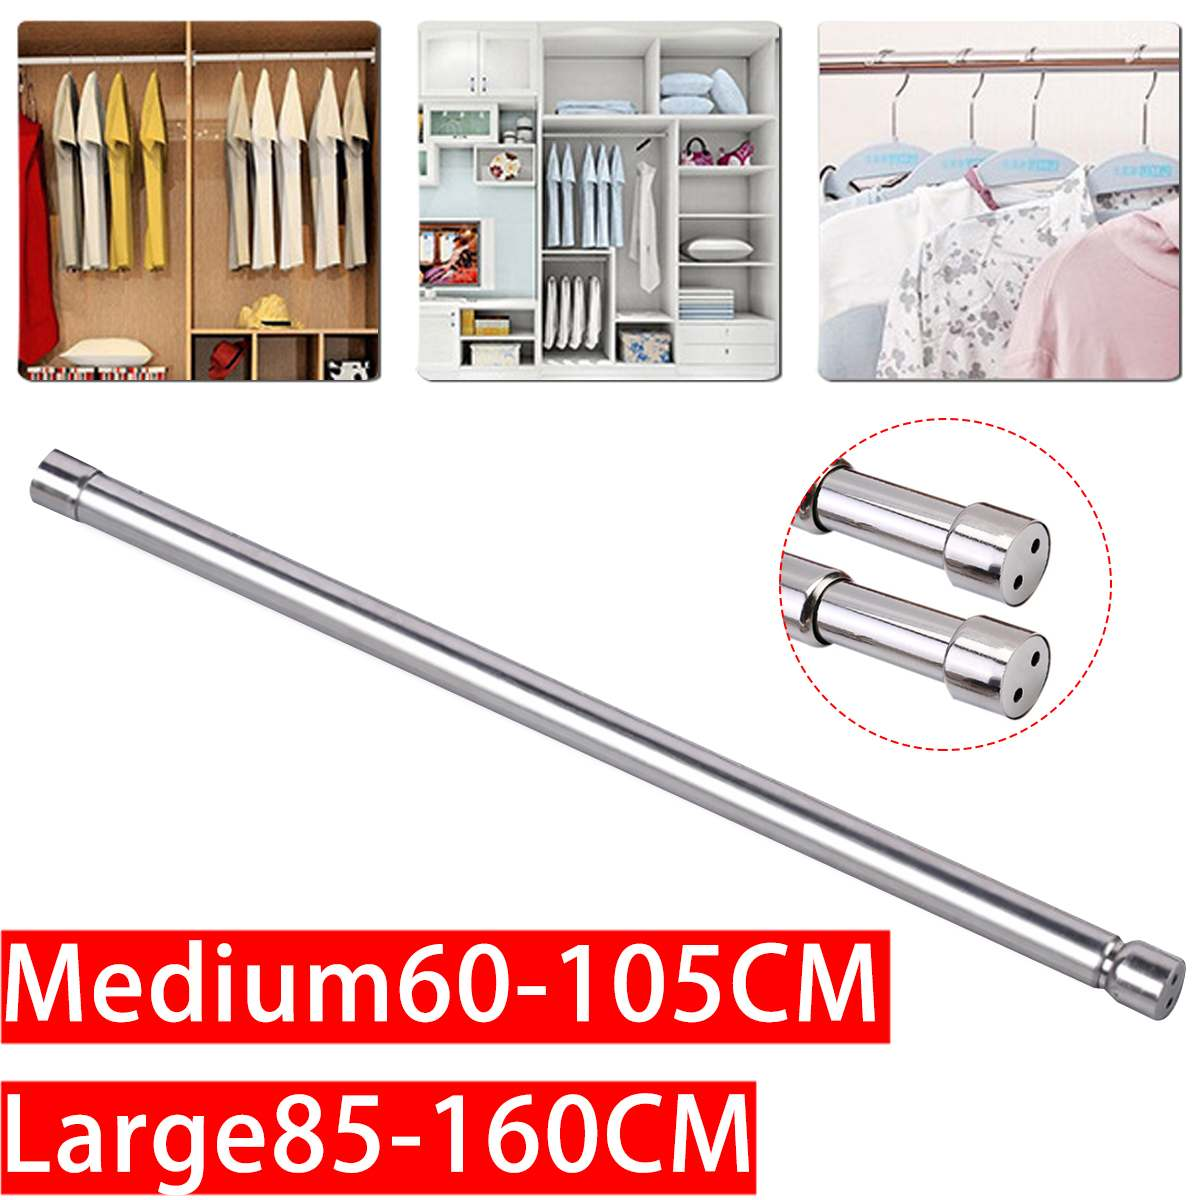 Adjustable Stainless Steel Spring Tension Rod Rail For Clothes Towels Retractable Shower Curtains Fixed Clothes rail